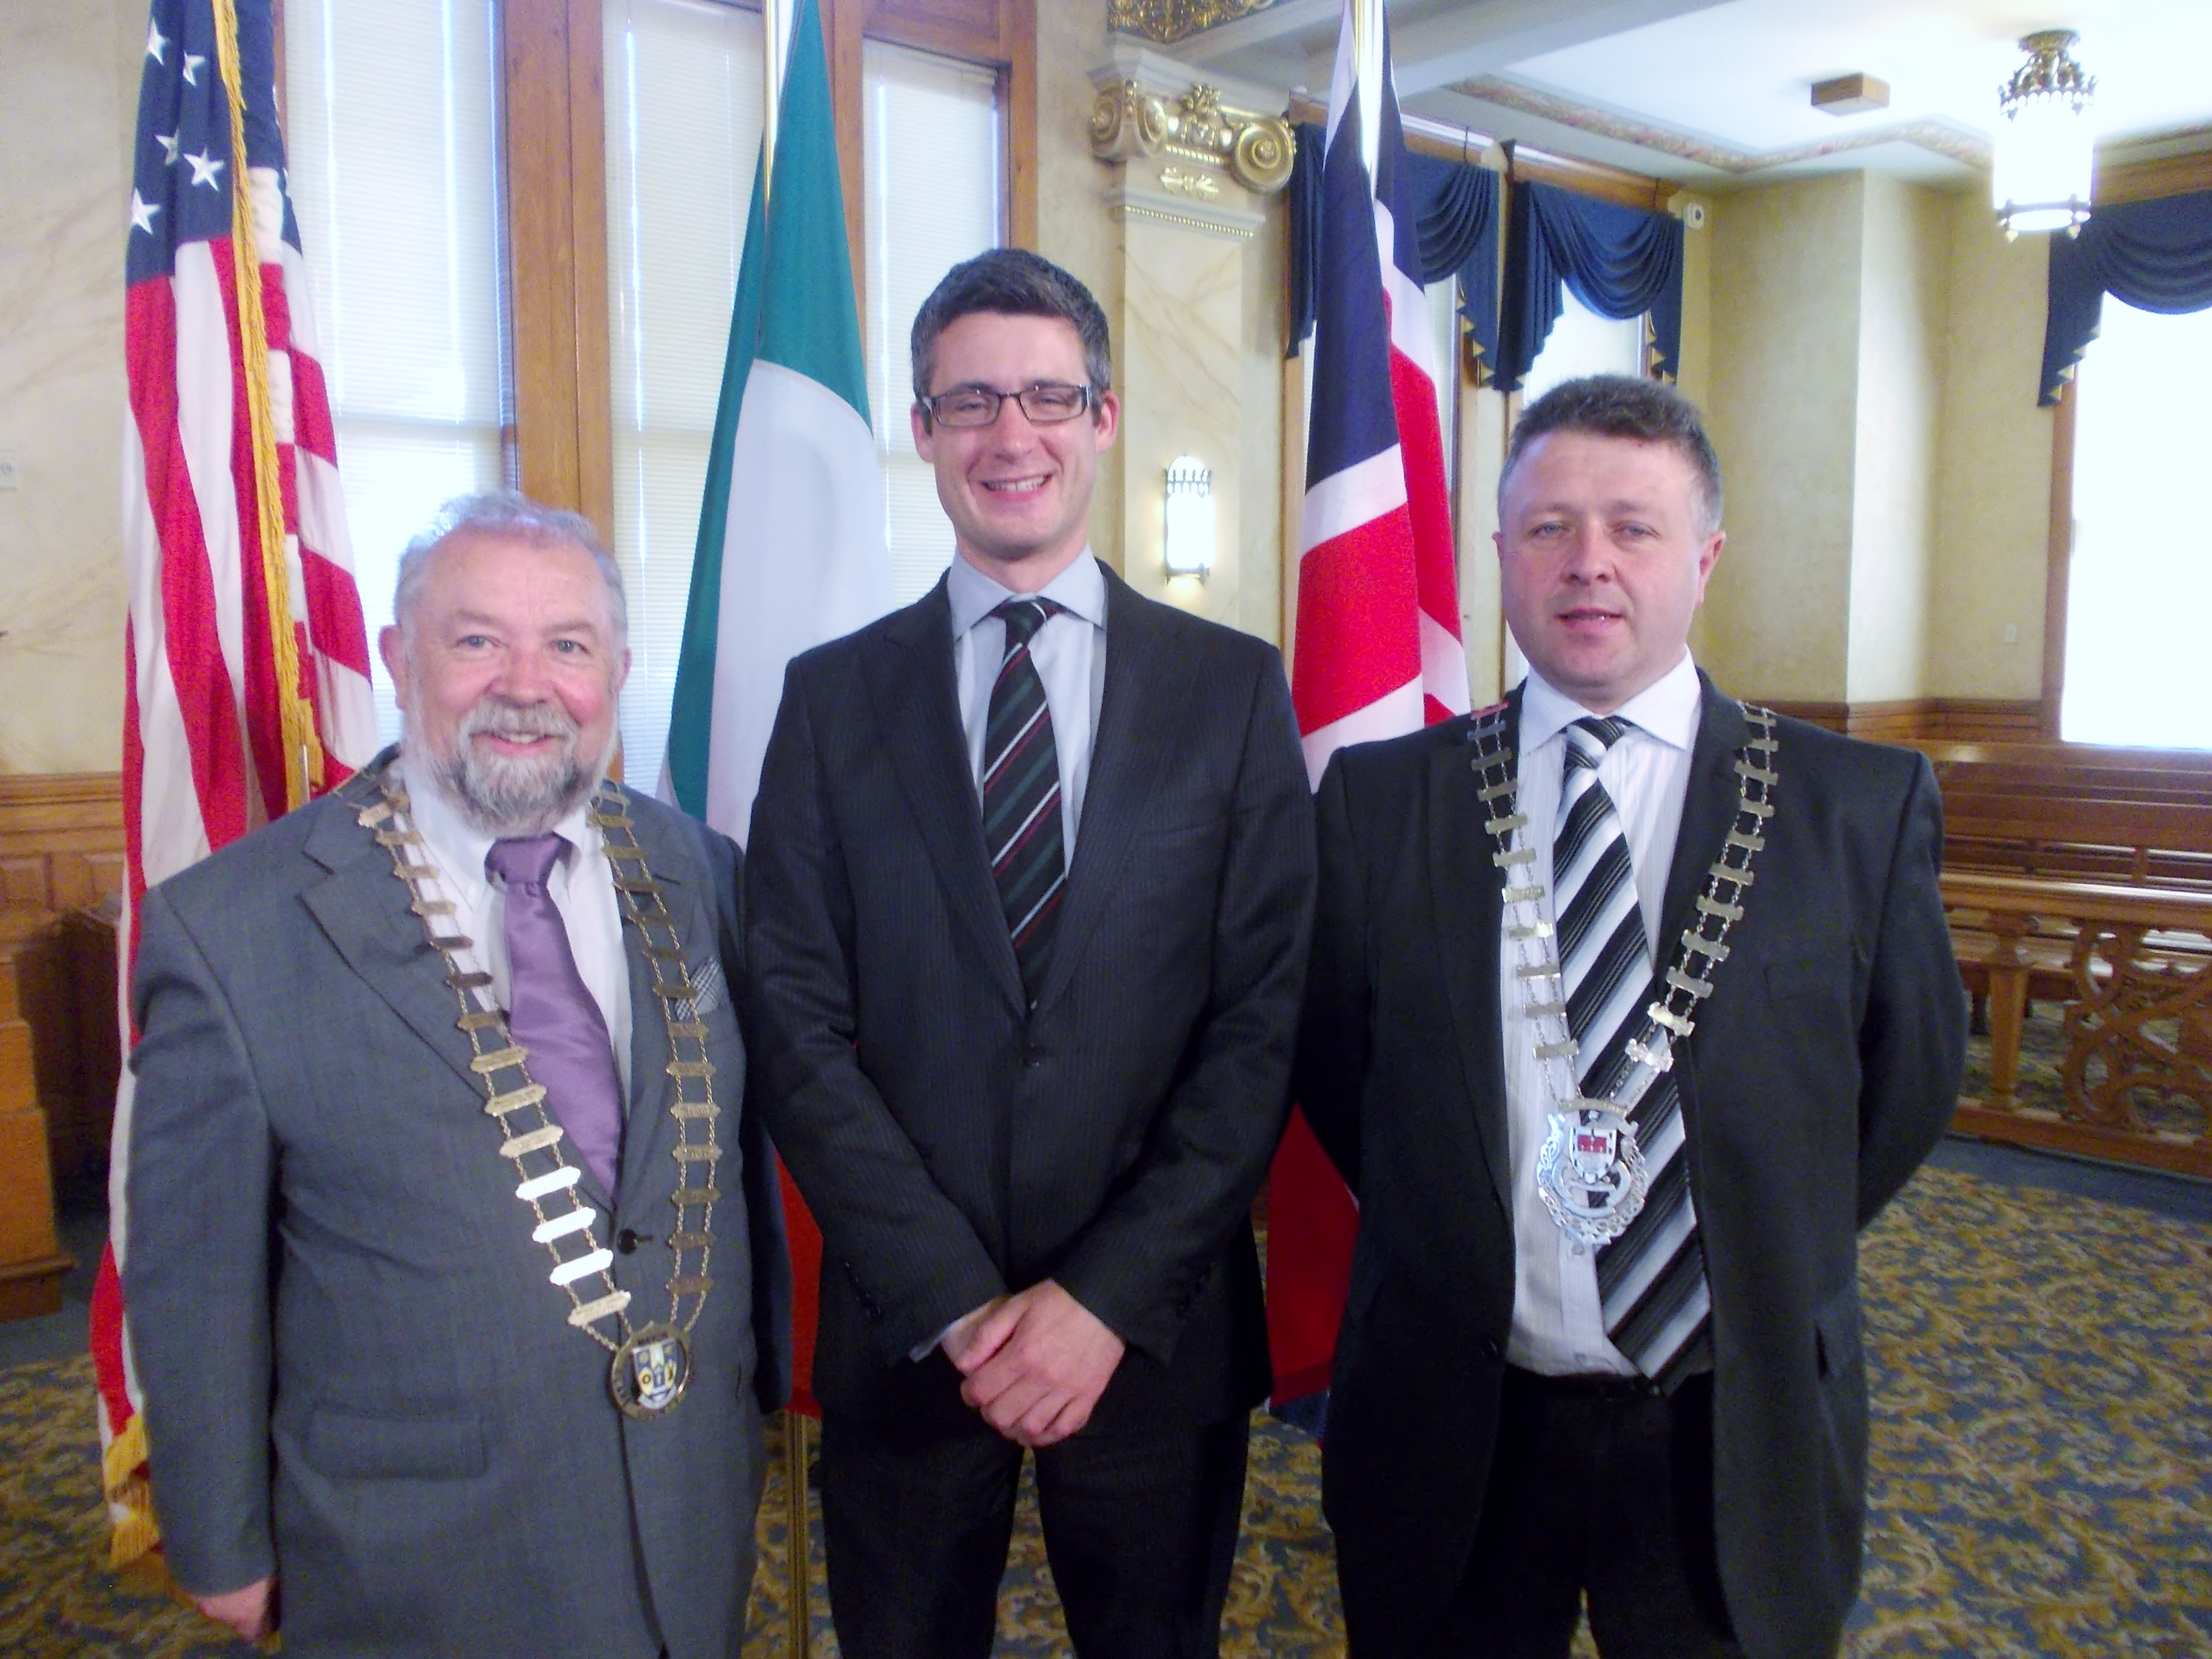 During his visit to Milwaukee, Wisconsin, Cllr. John Crowe, Cathaoirleach of Clare County Council had an opportunity to meet with Deputy Consul General of Chicago, Nicholas Michael. Also present (on right) is Cllr. Damien Ryan, Cathaoirleach of Mayo County Council.